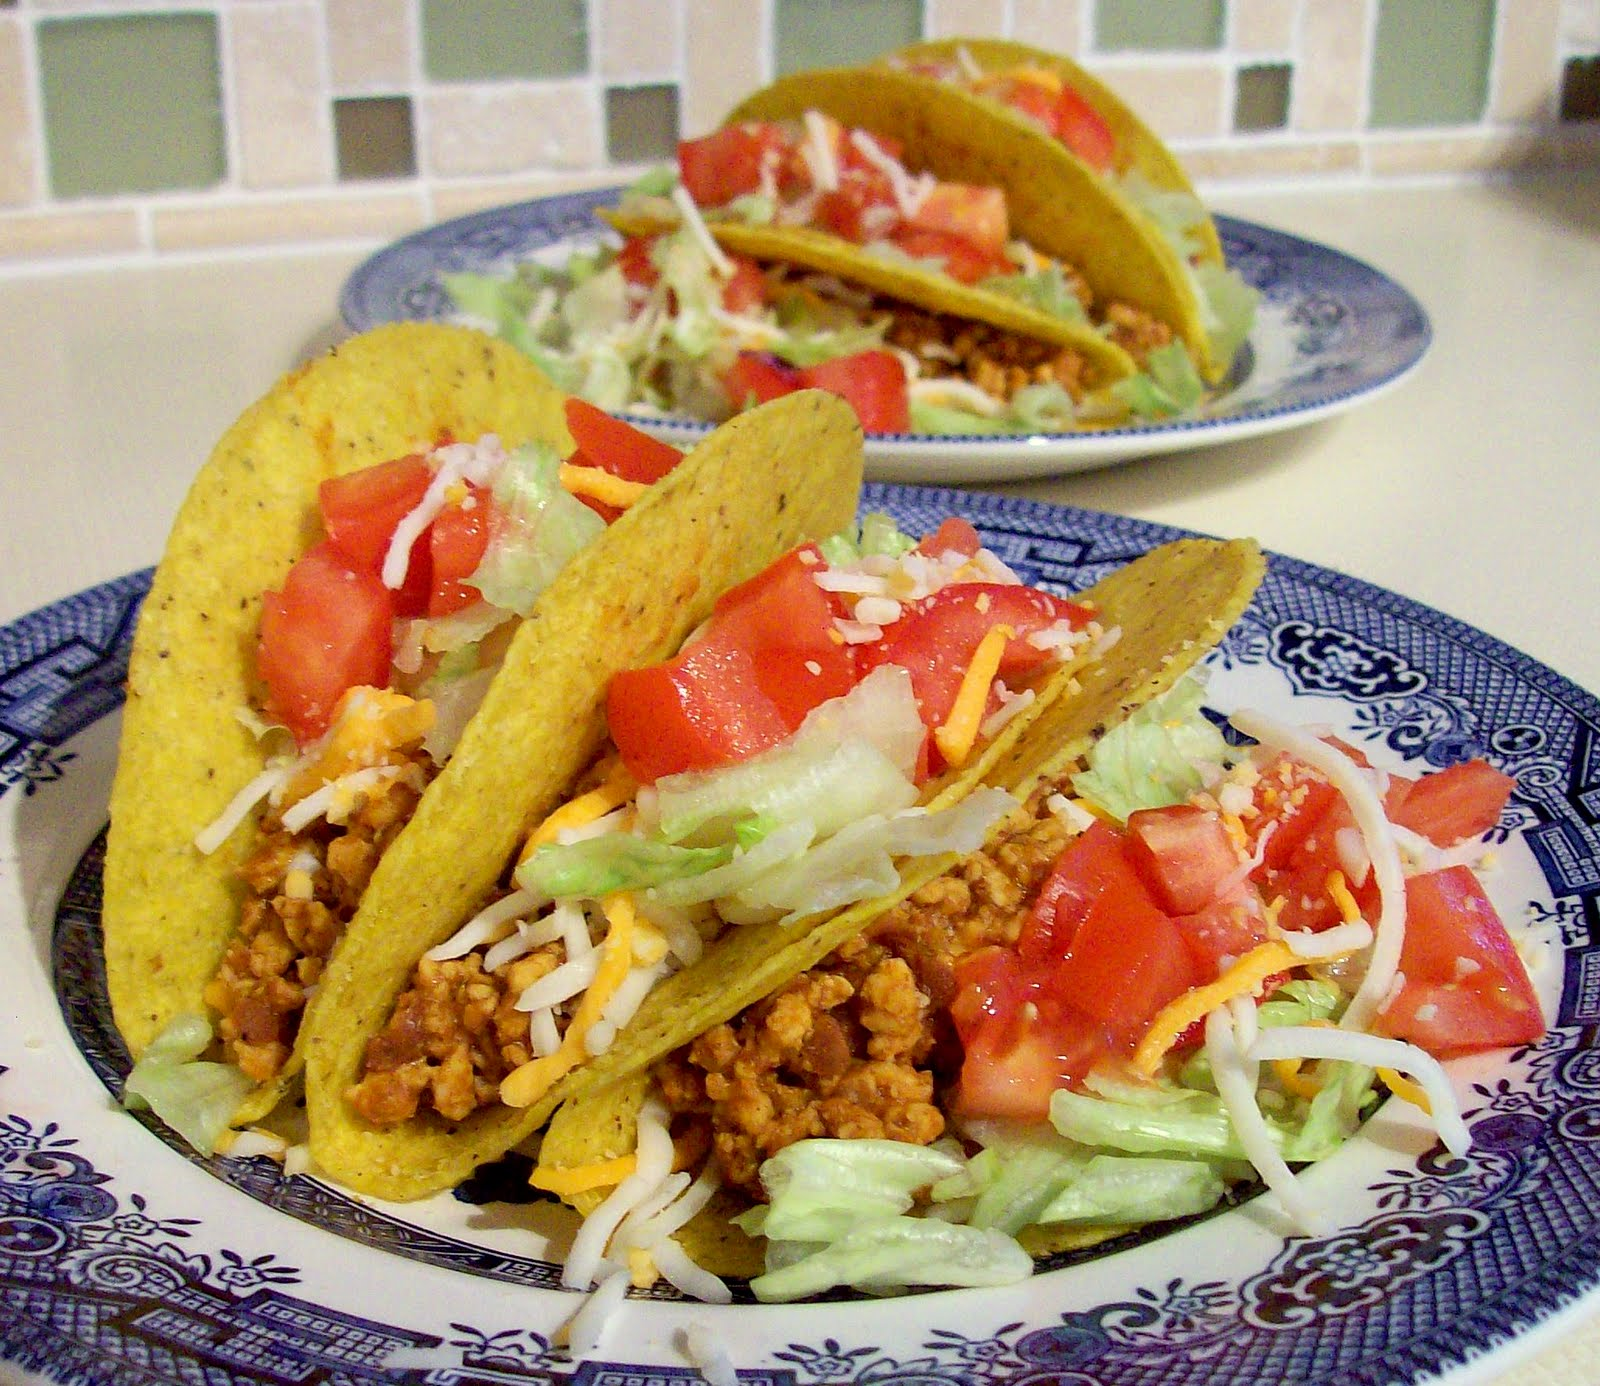 Low fat dinner recipes with ground turkey tacos